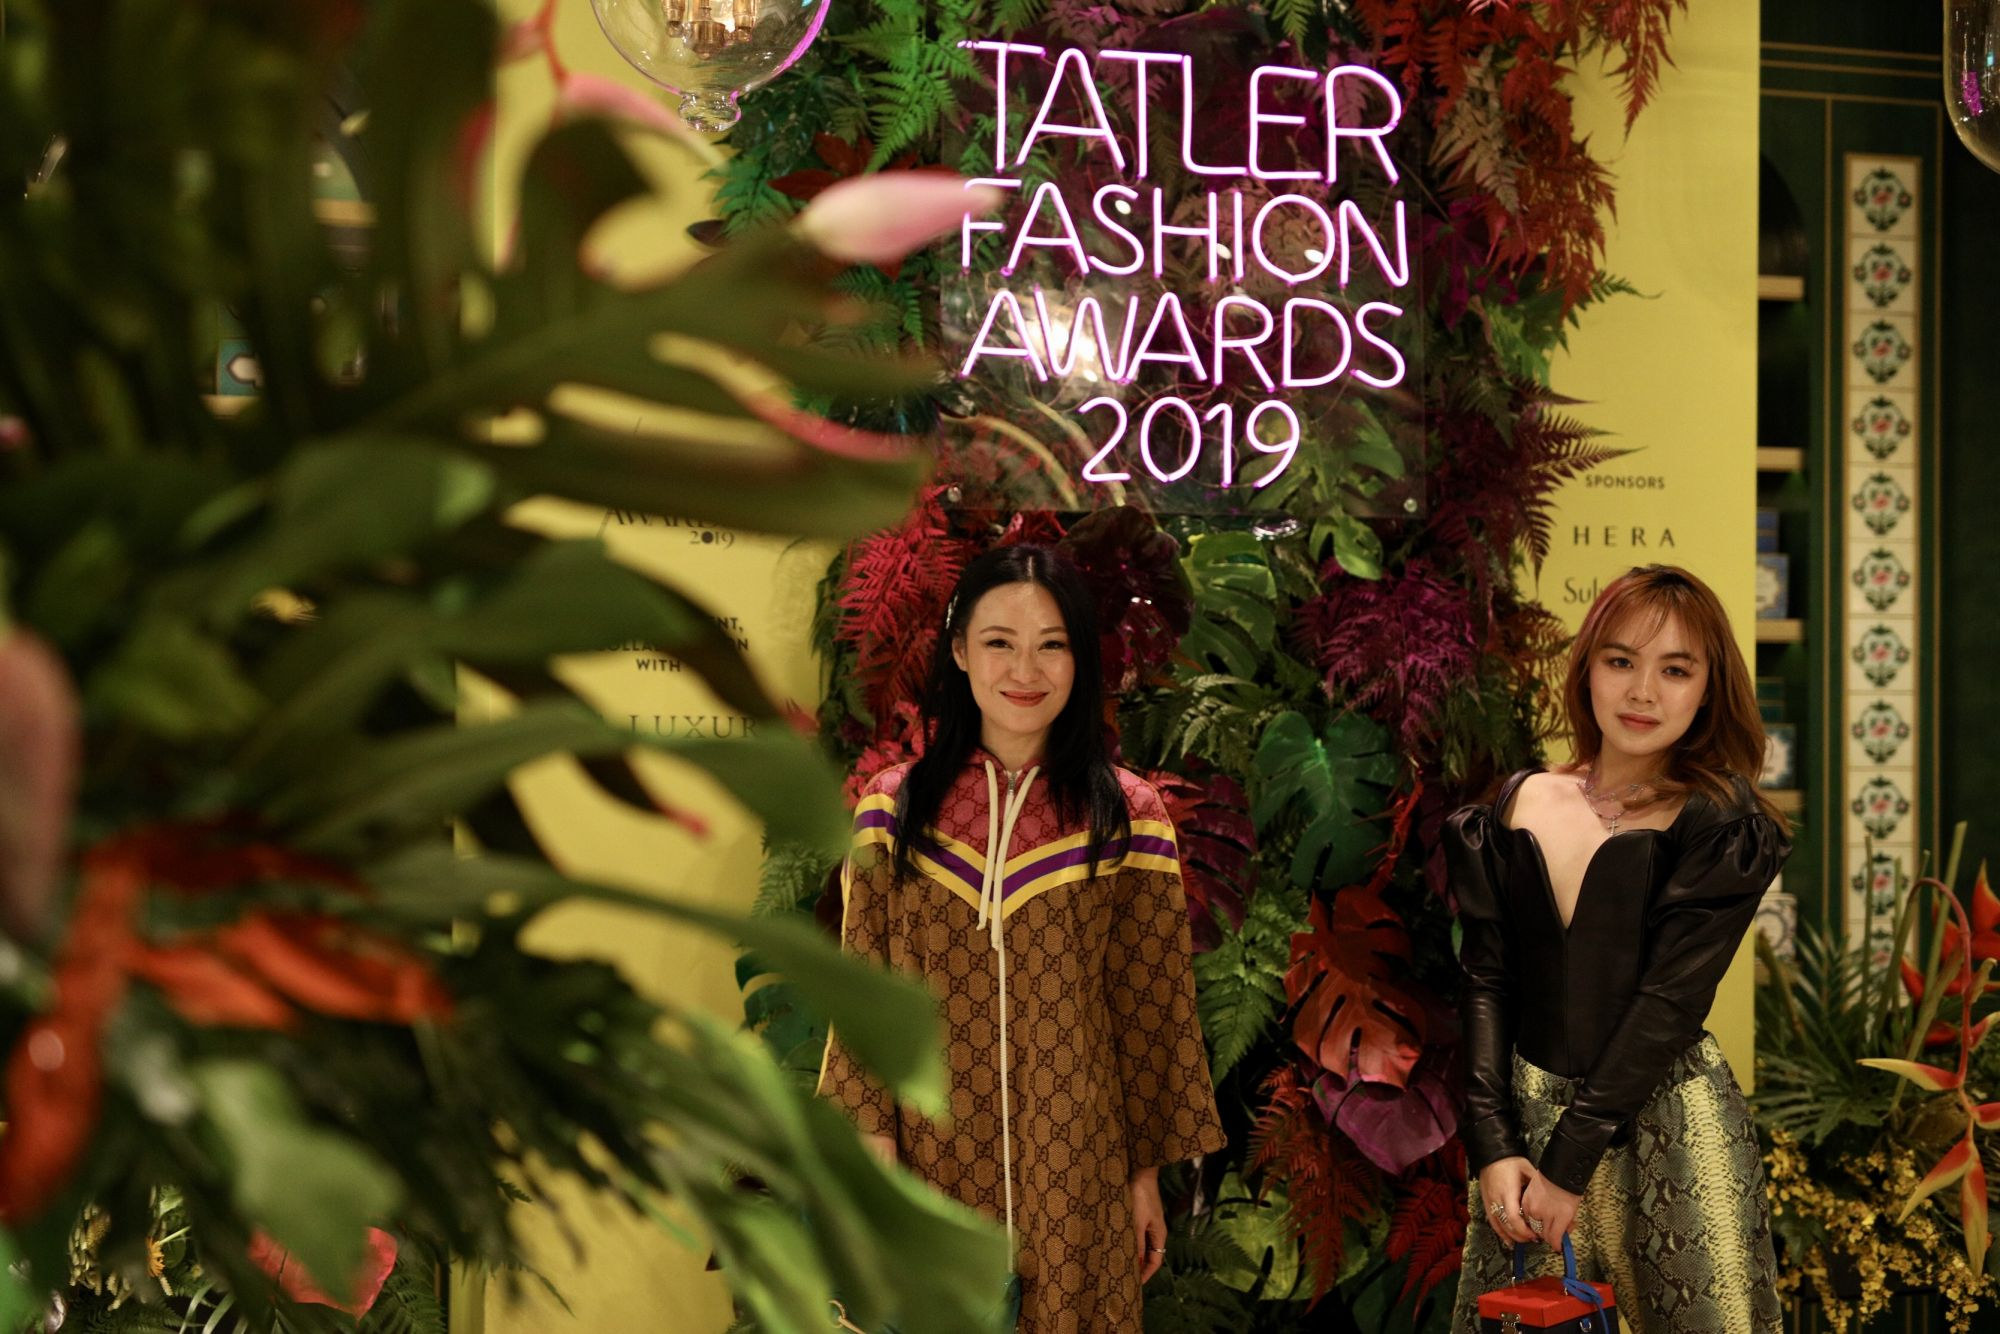 Tatler Fashion Awards 2019: What Went Down